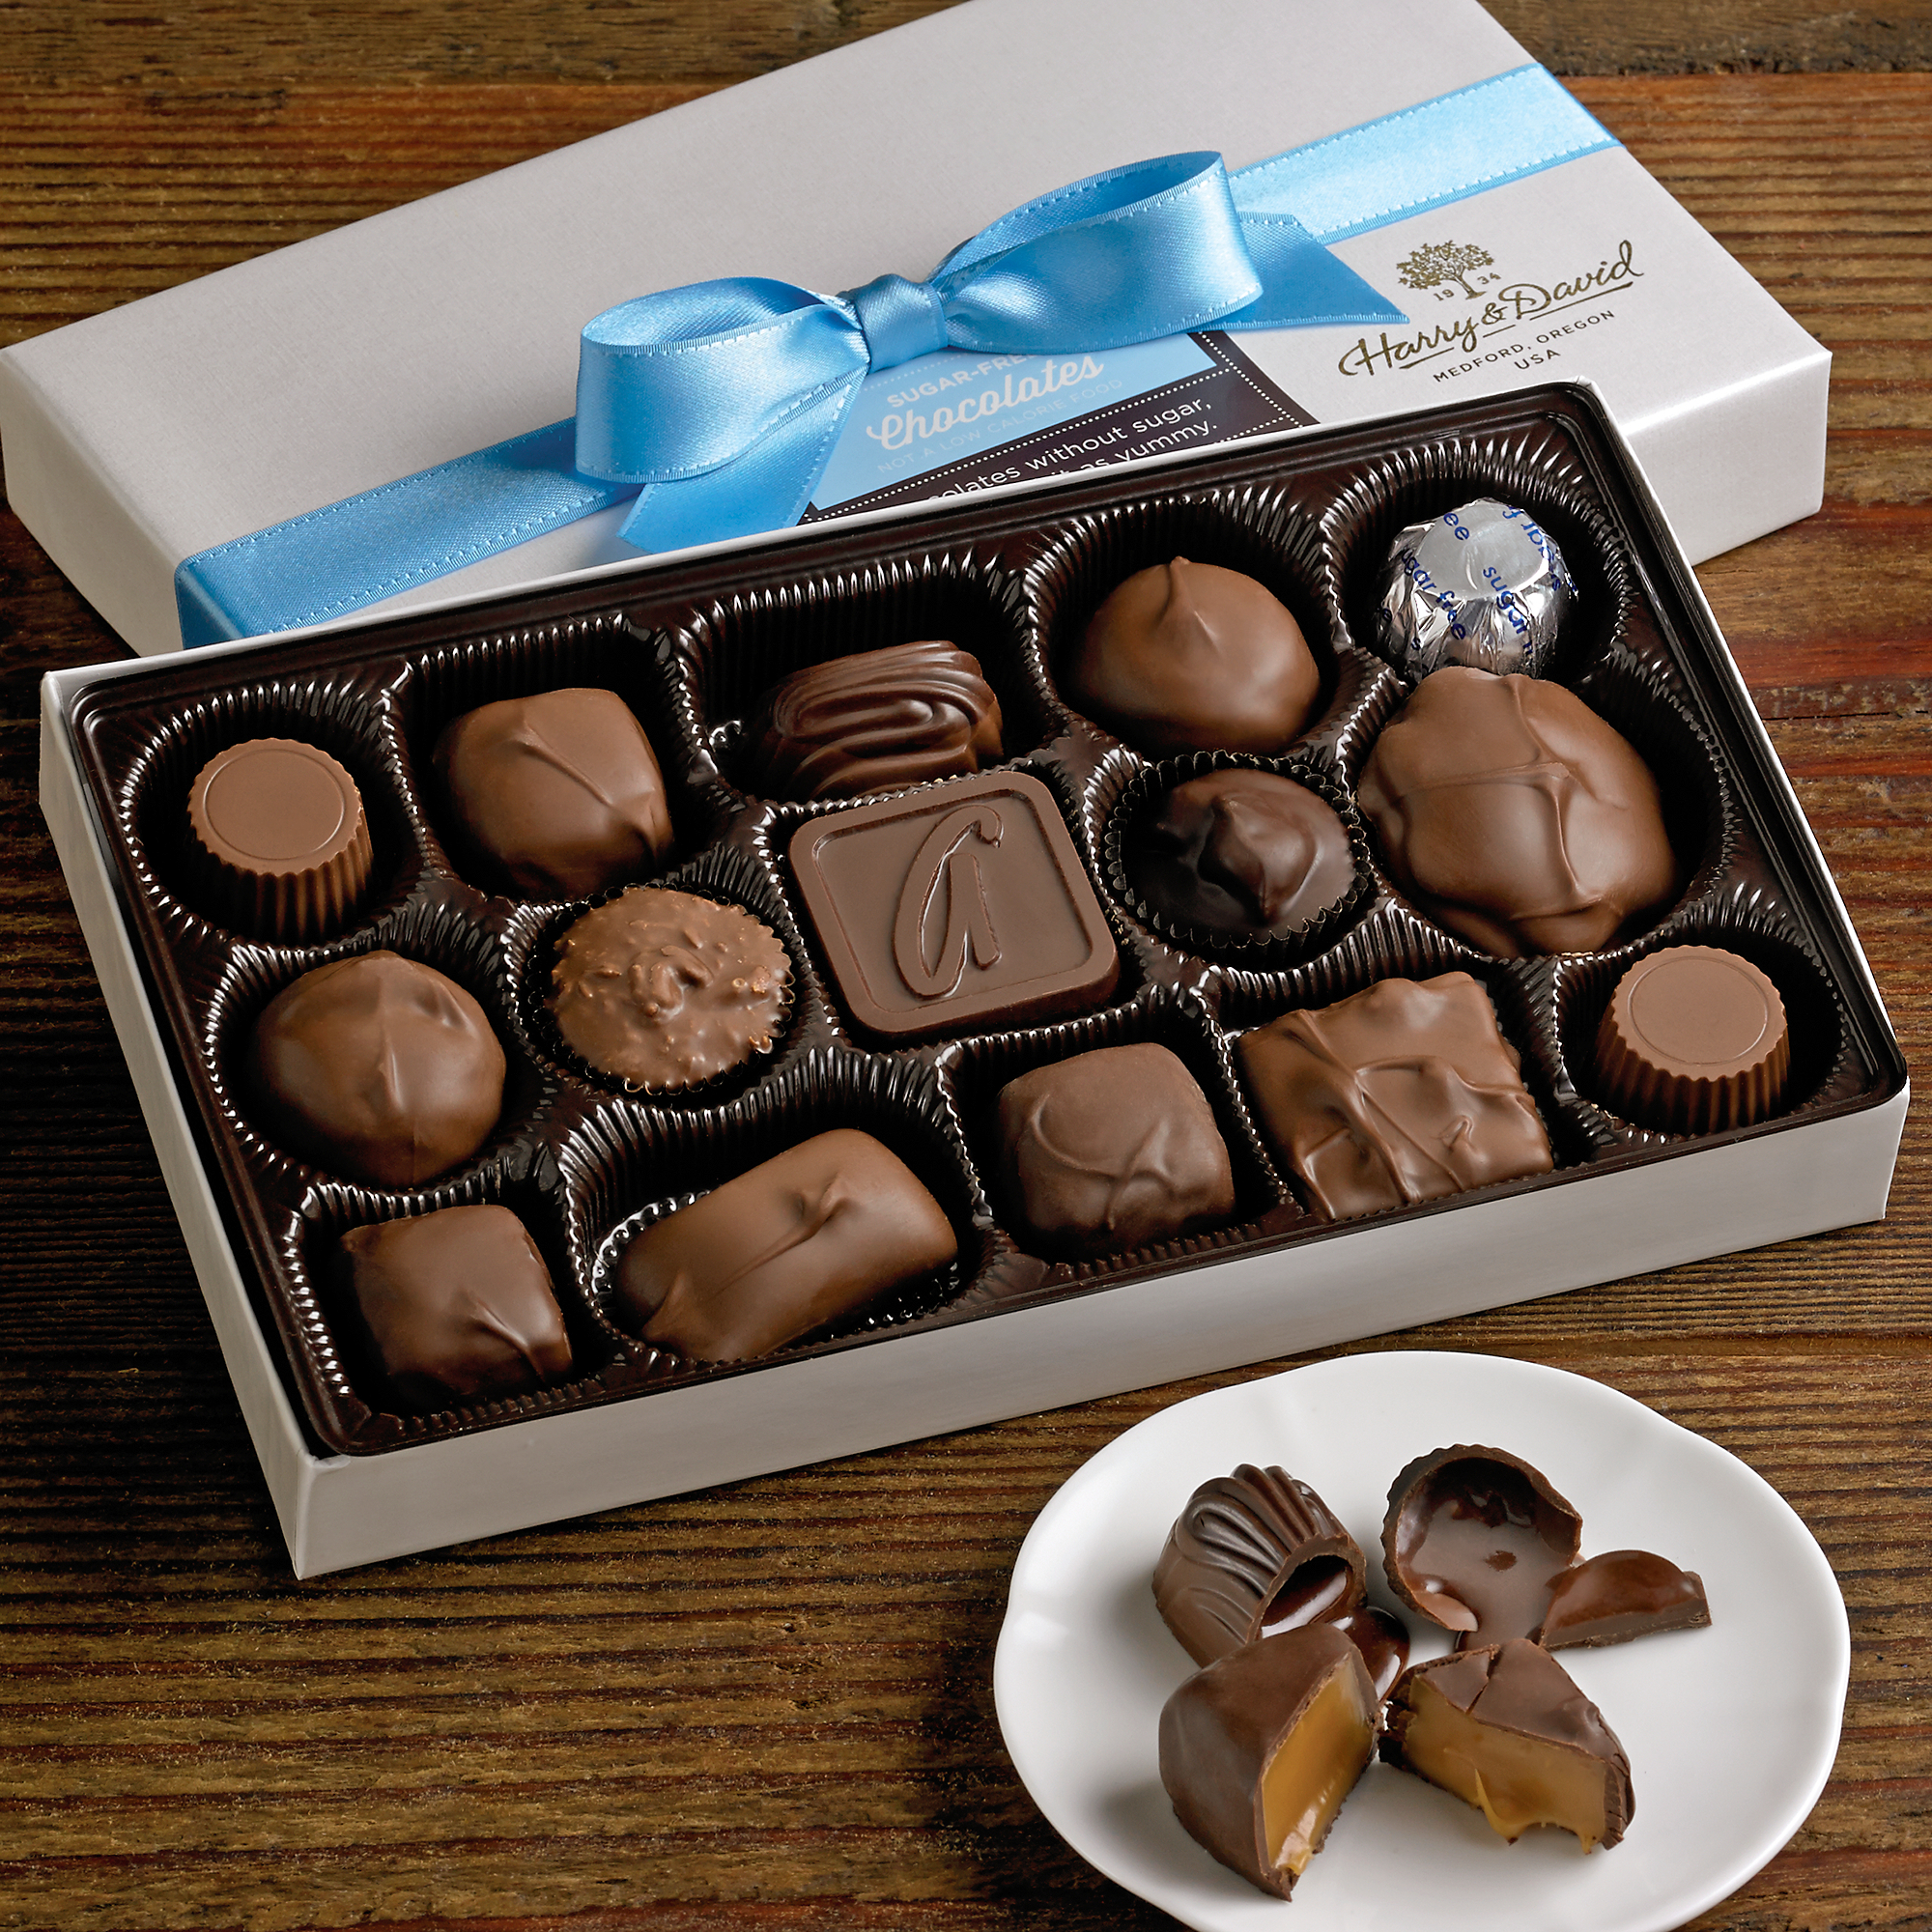 Diabetic chocolate gift boxes sugar free elegant jewelry gift box diabetic chocolate gift boxes sugar free chocolates special diet gifts harry david negle Image collections